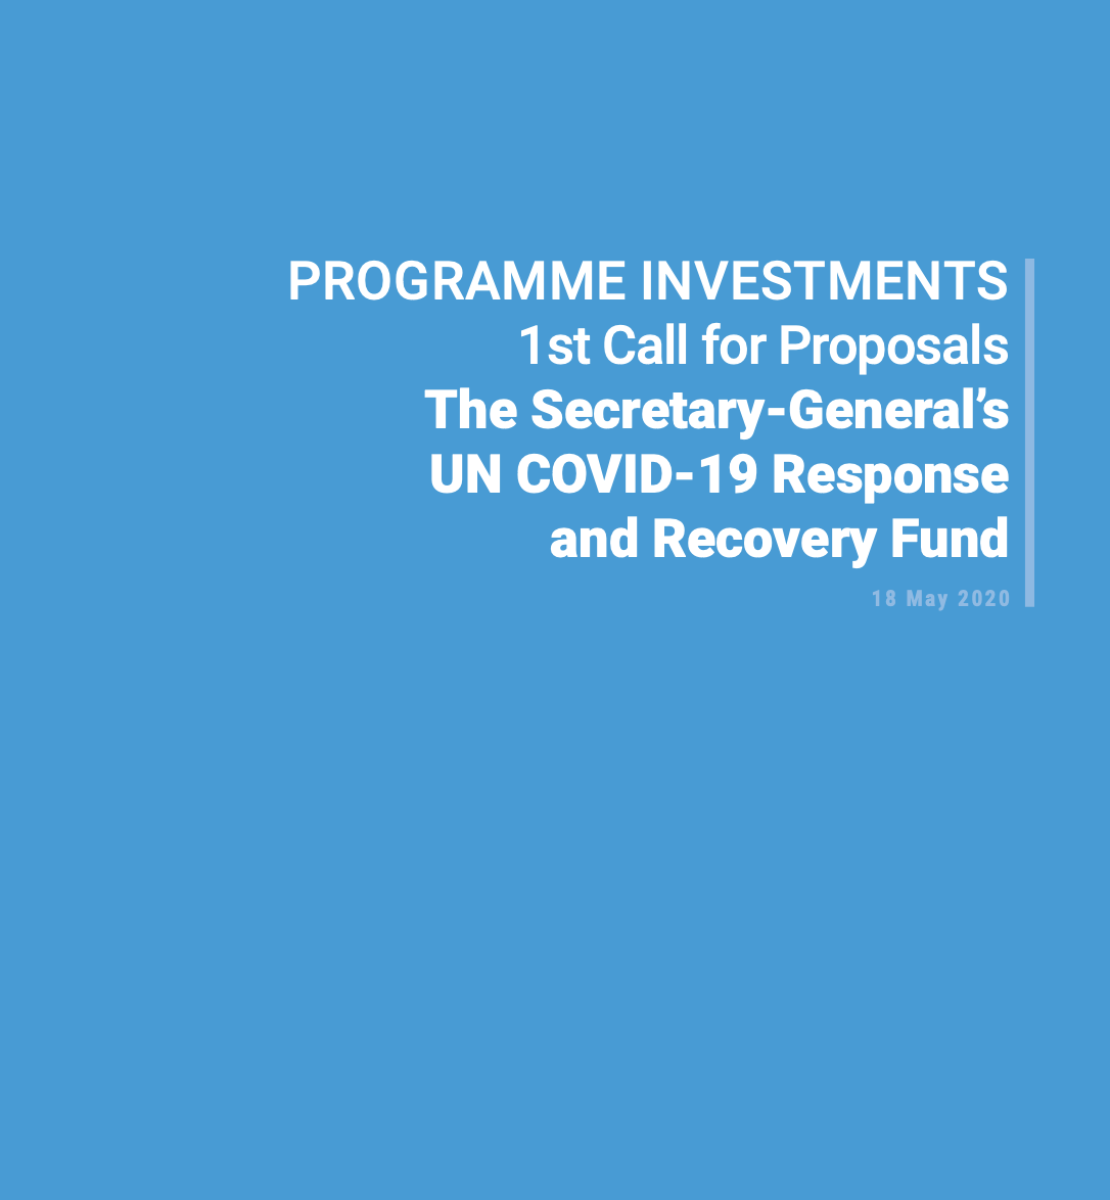 A blue cover with the words: PROGRAMME INVESTMENTS 1st Call for Proposals The Secretary-General's UN COVID-19 Response and Recovery Fund